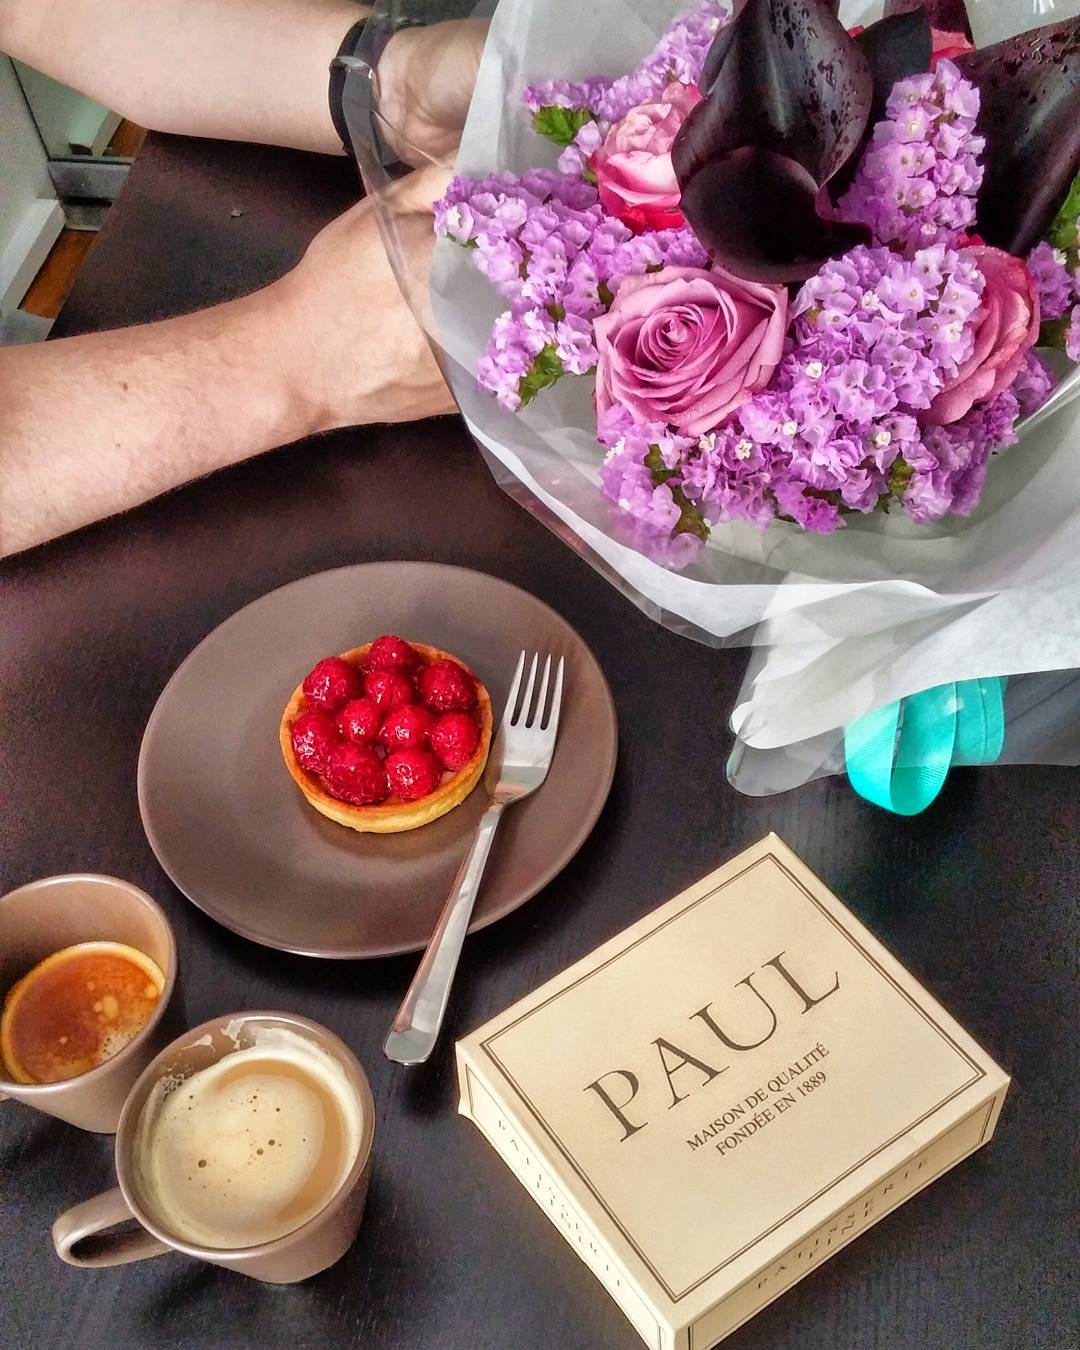 Those hands bought me those flowers , that raspberry tart & made me that espresso ❤ #HBDtoME!